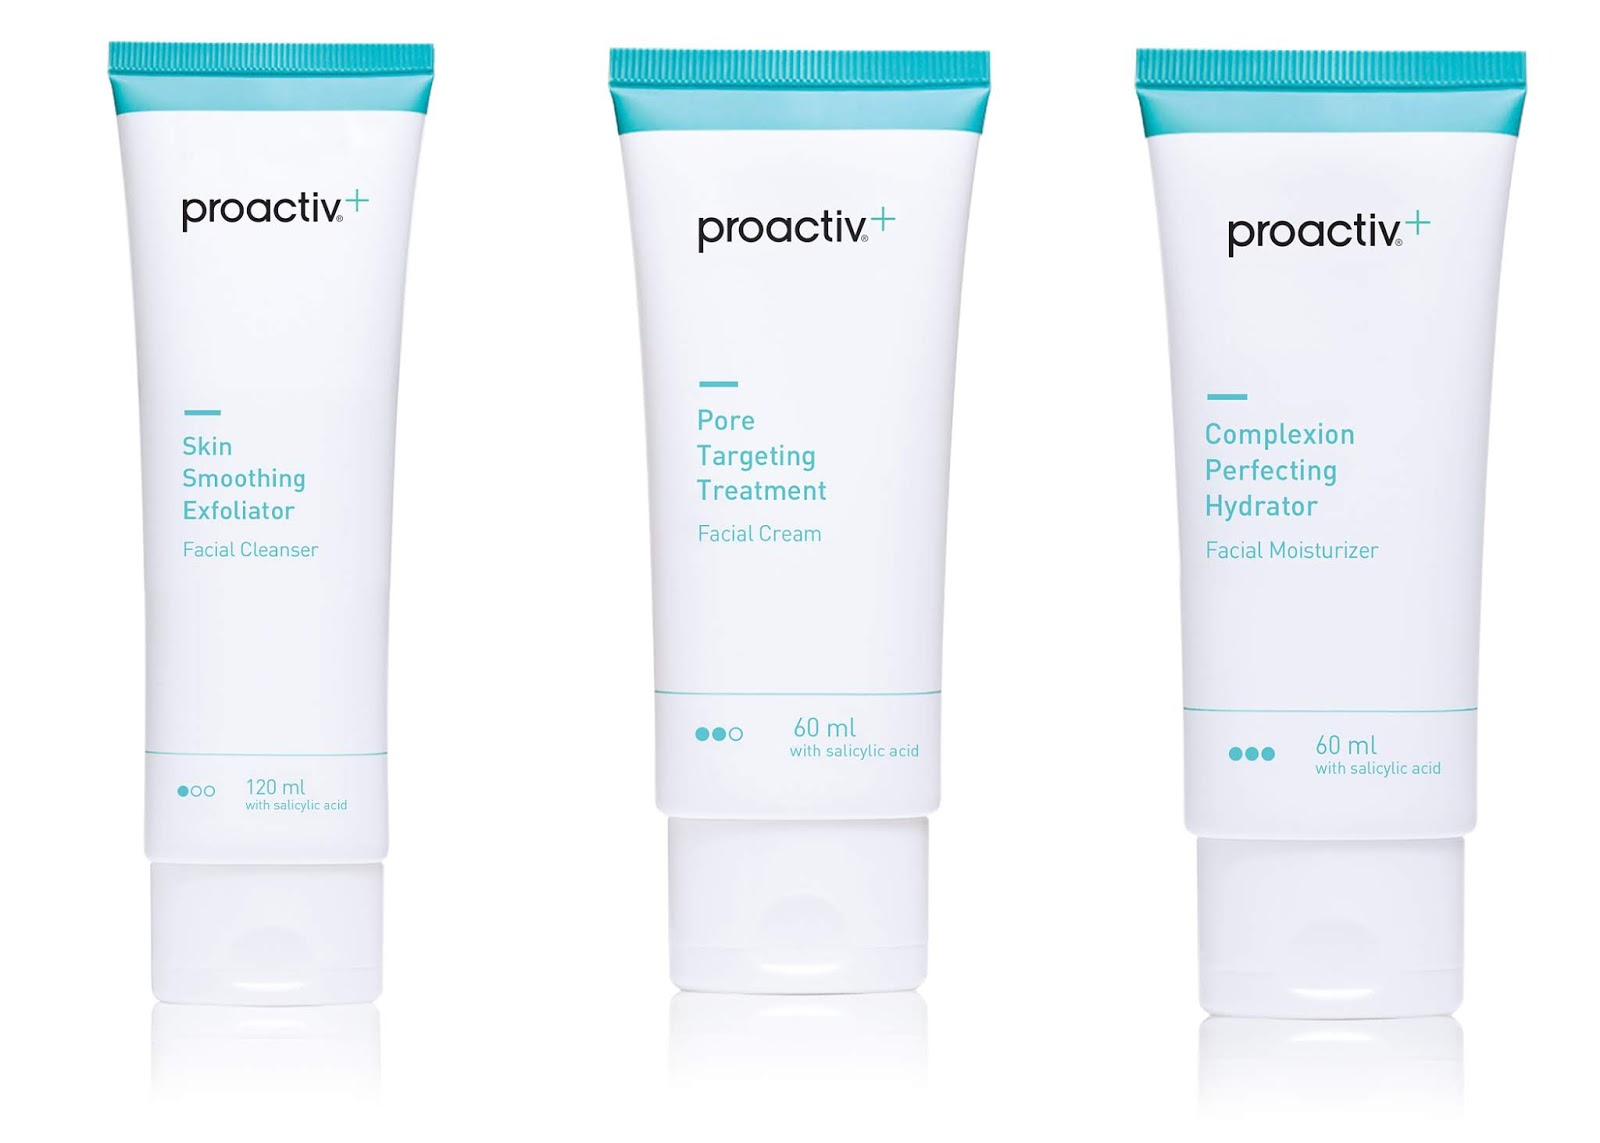 Proactiv Plus 3-Step Clear Skin System